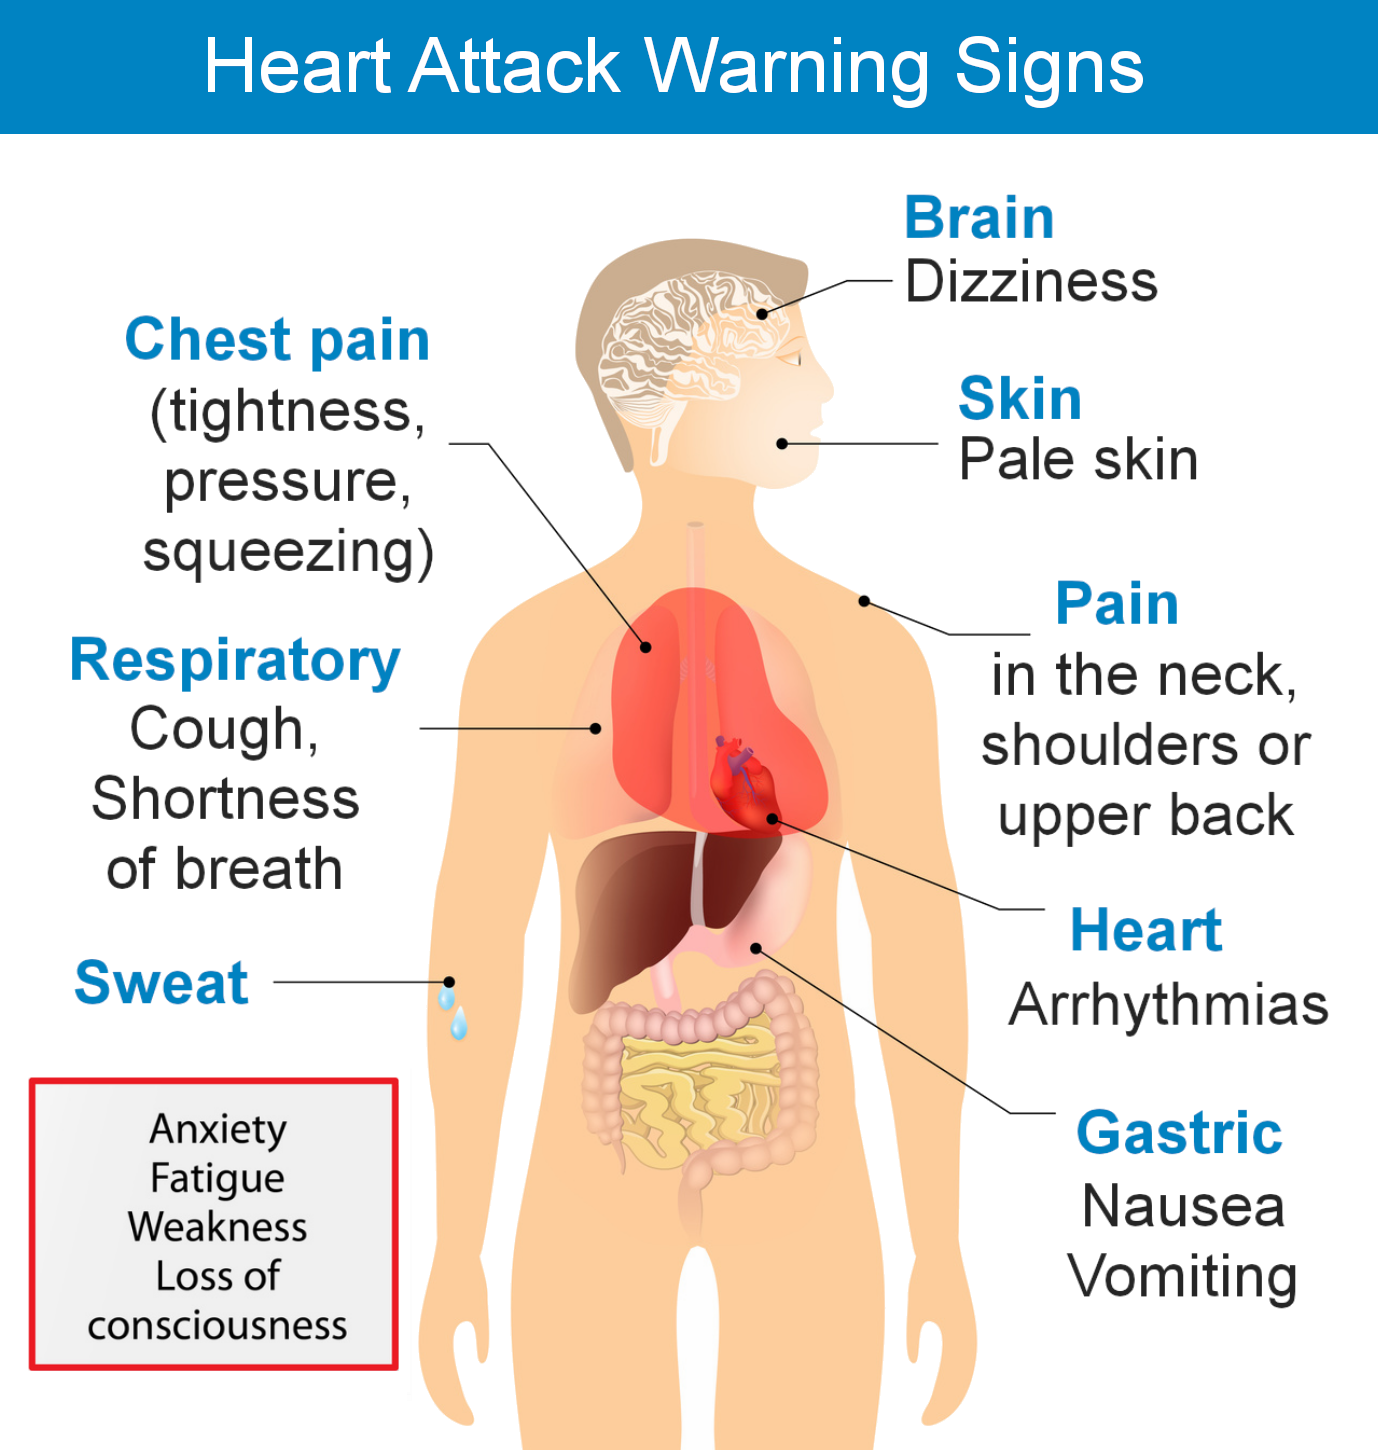 heart attack, heart attack symptoms, heart attack warning signs and care, heart attack warning signs